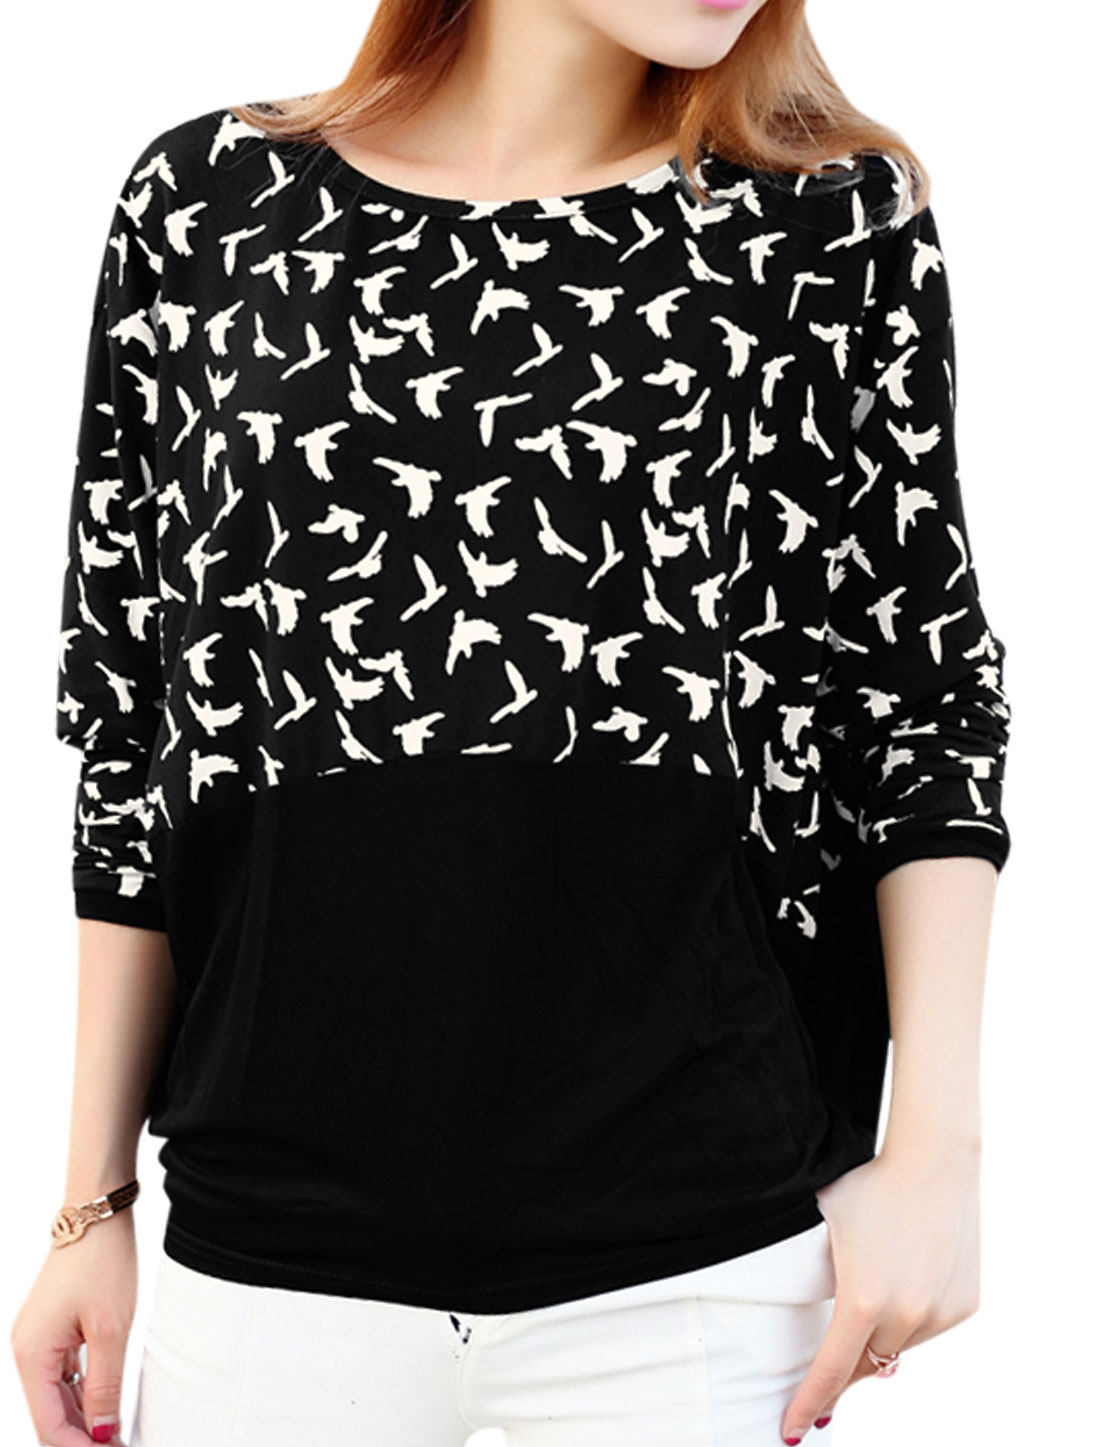 Ladies Black Batwing Sleeves Round Neck Pullover Casual Top XS